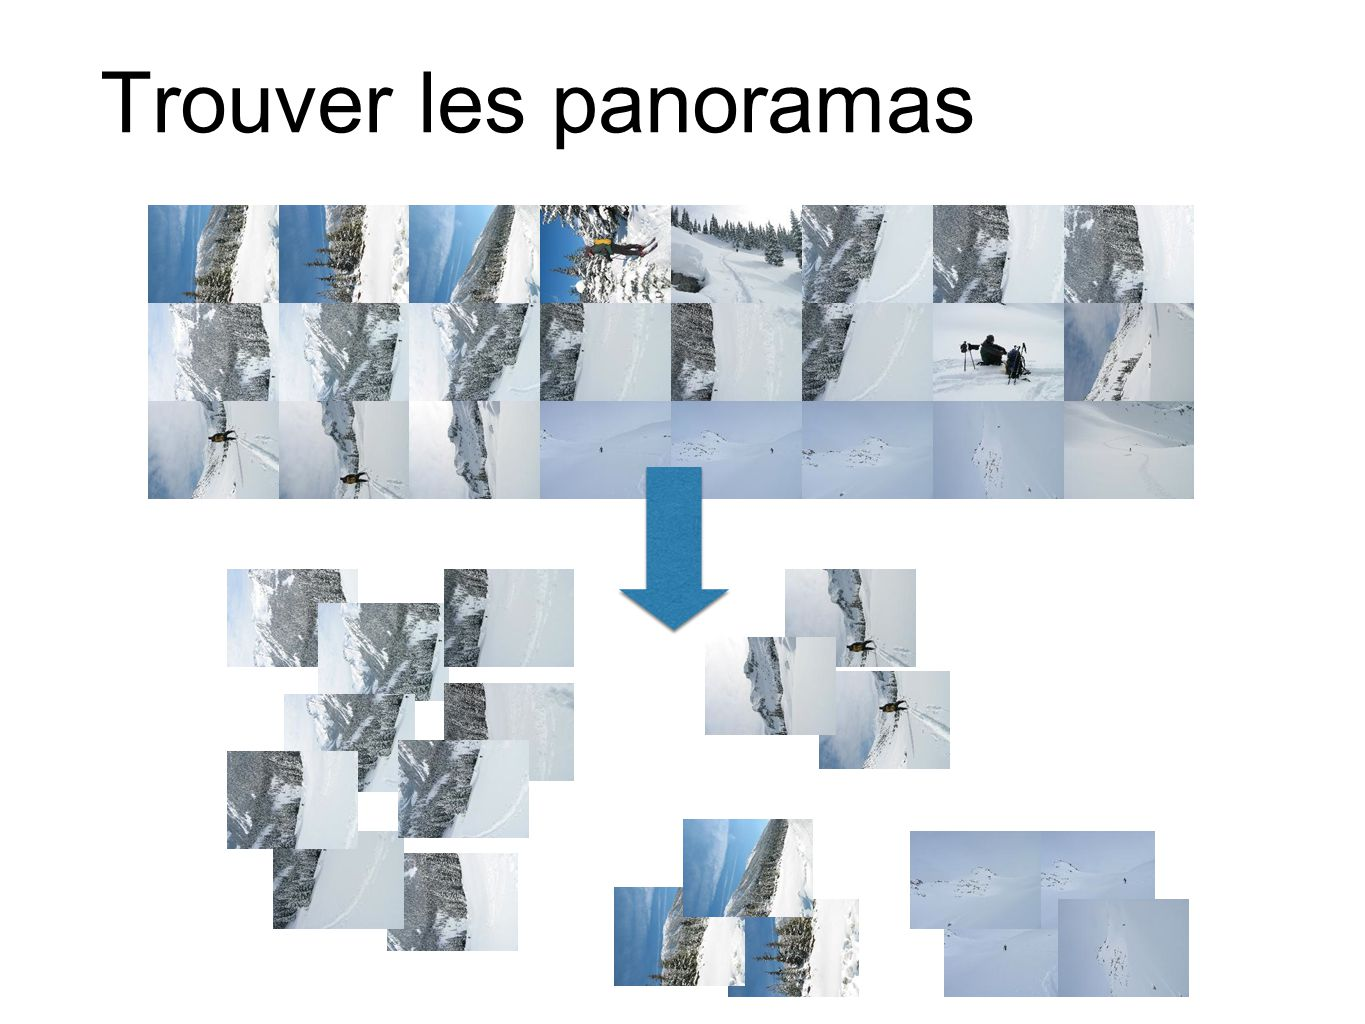 Trouver les panoramas